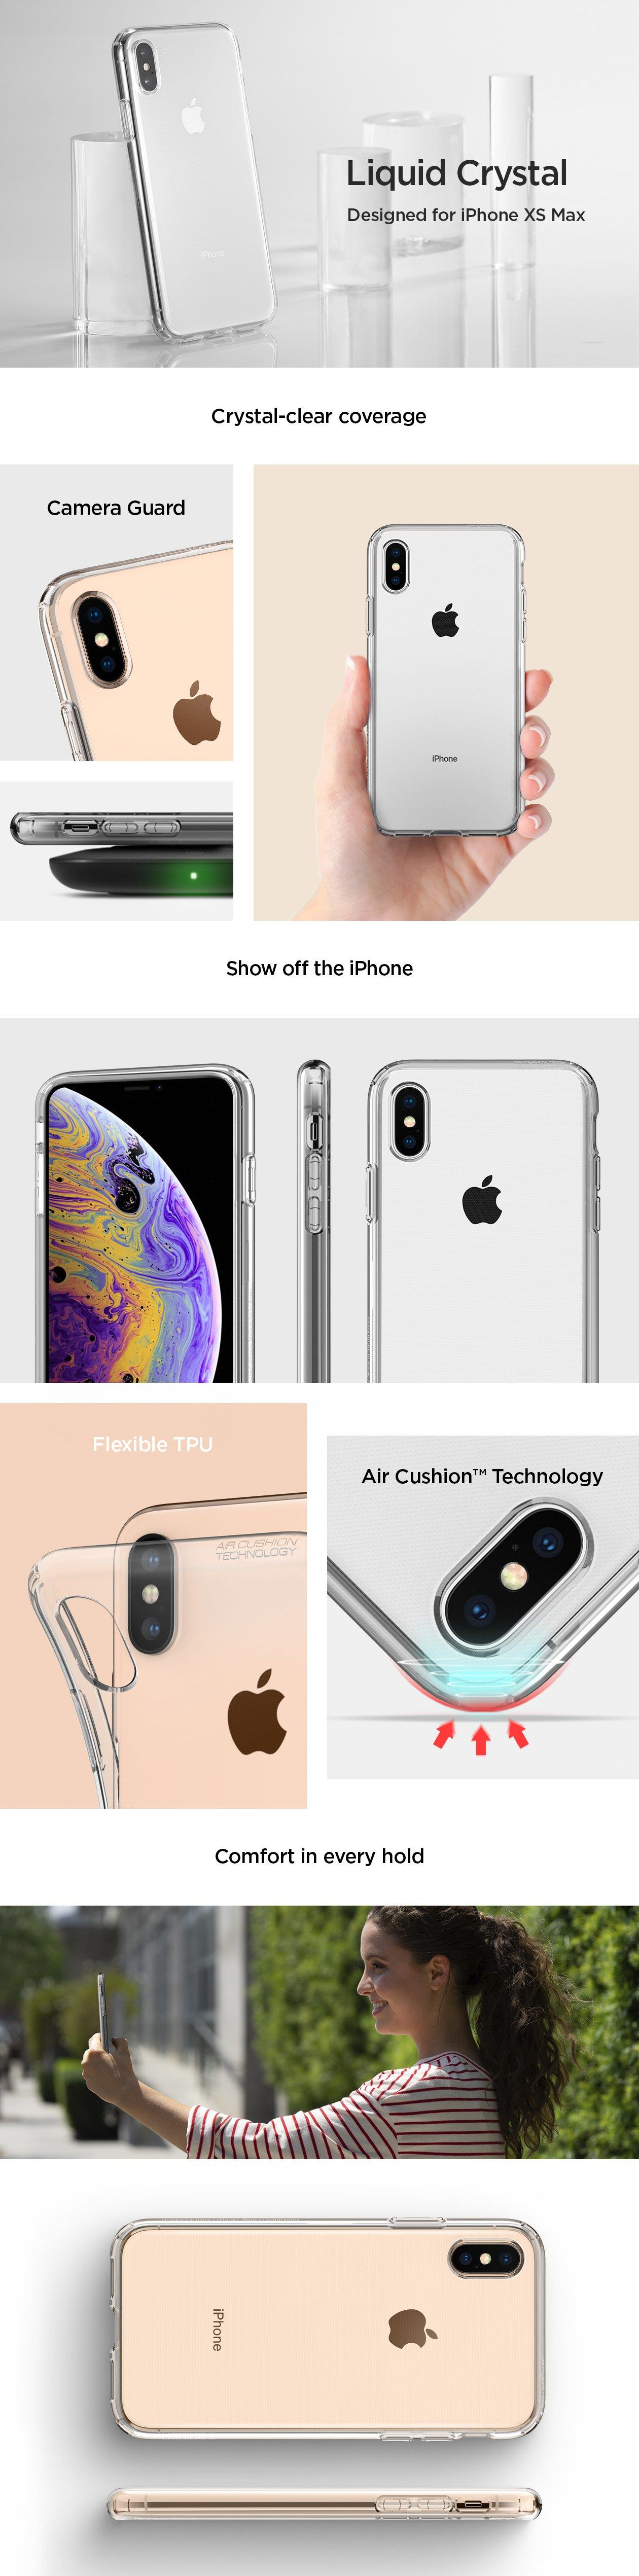 03f9a01f2bec Showcase the new iPhone with long-lasting clarity - Stays watermark-free  with innovative dot pattern - Mil-grade certified with Air Cushion  Technology®